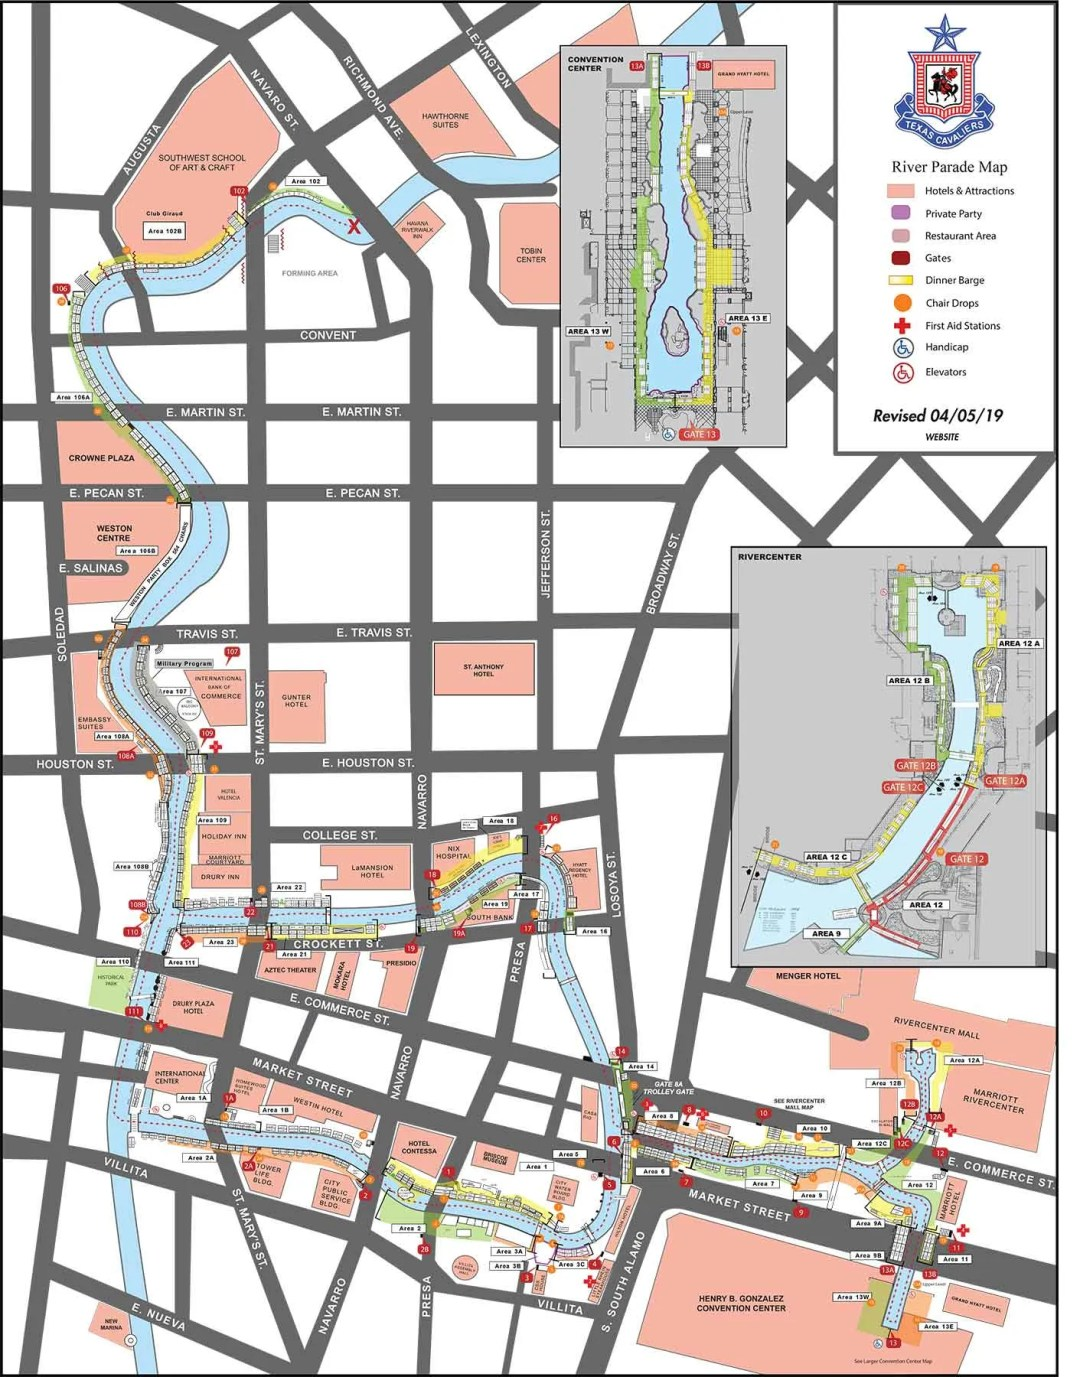 Texas Cavalier River Parade Map 2019